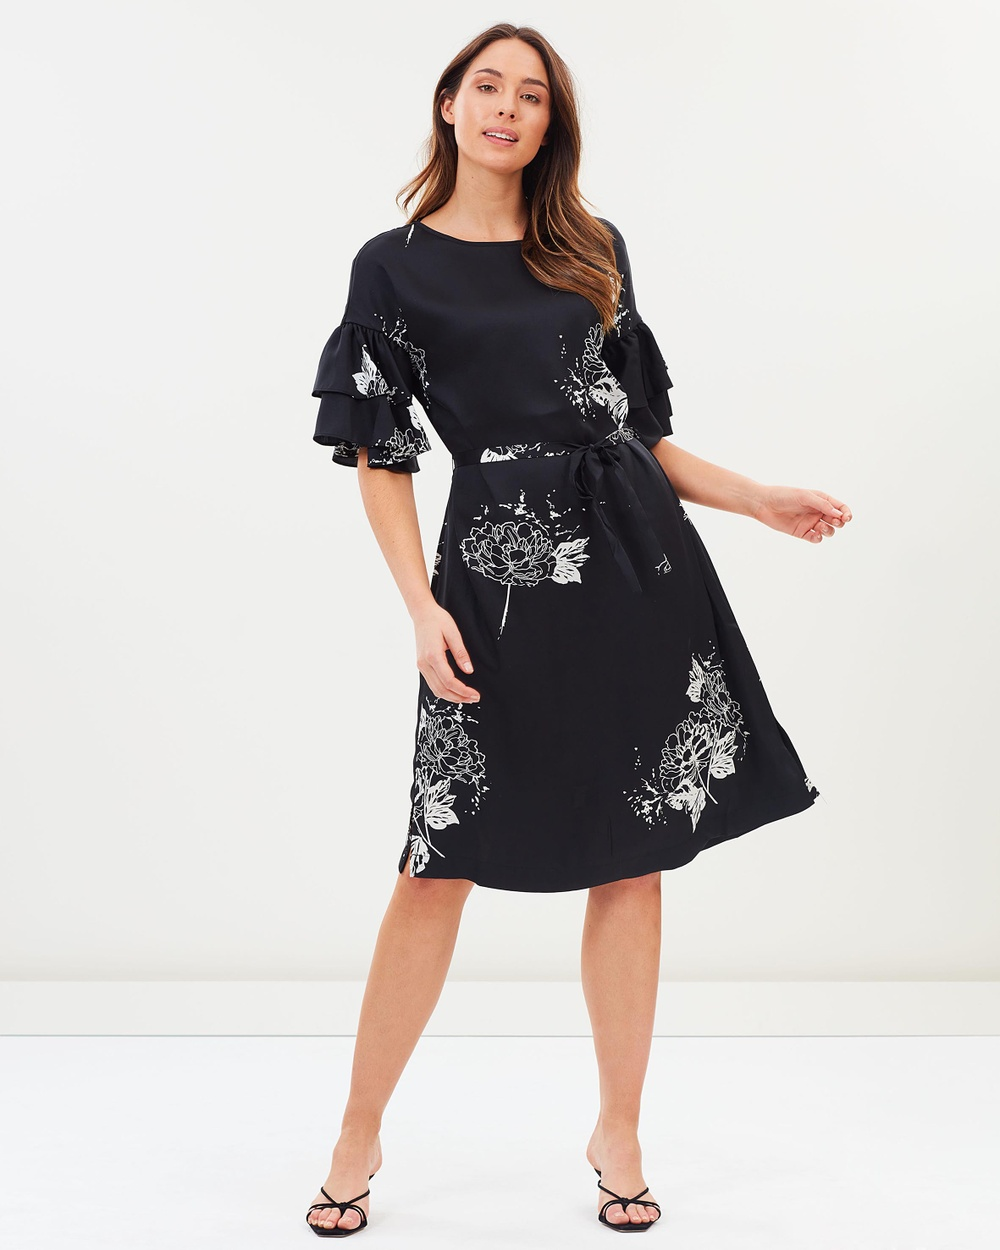 Wite Champagne Flower Dress Printed Dresses Black & Ivory Champagne Flower Dress